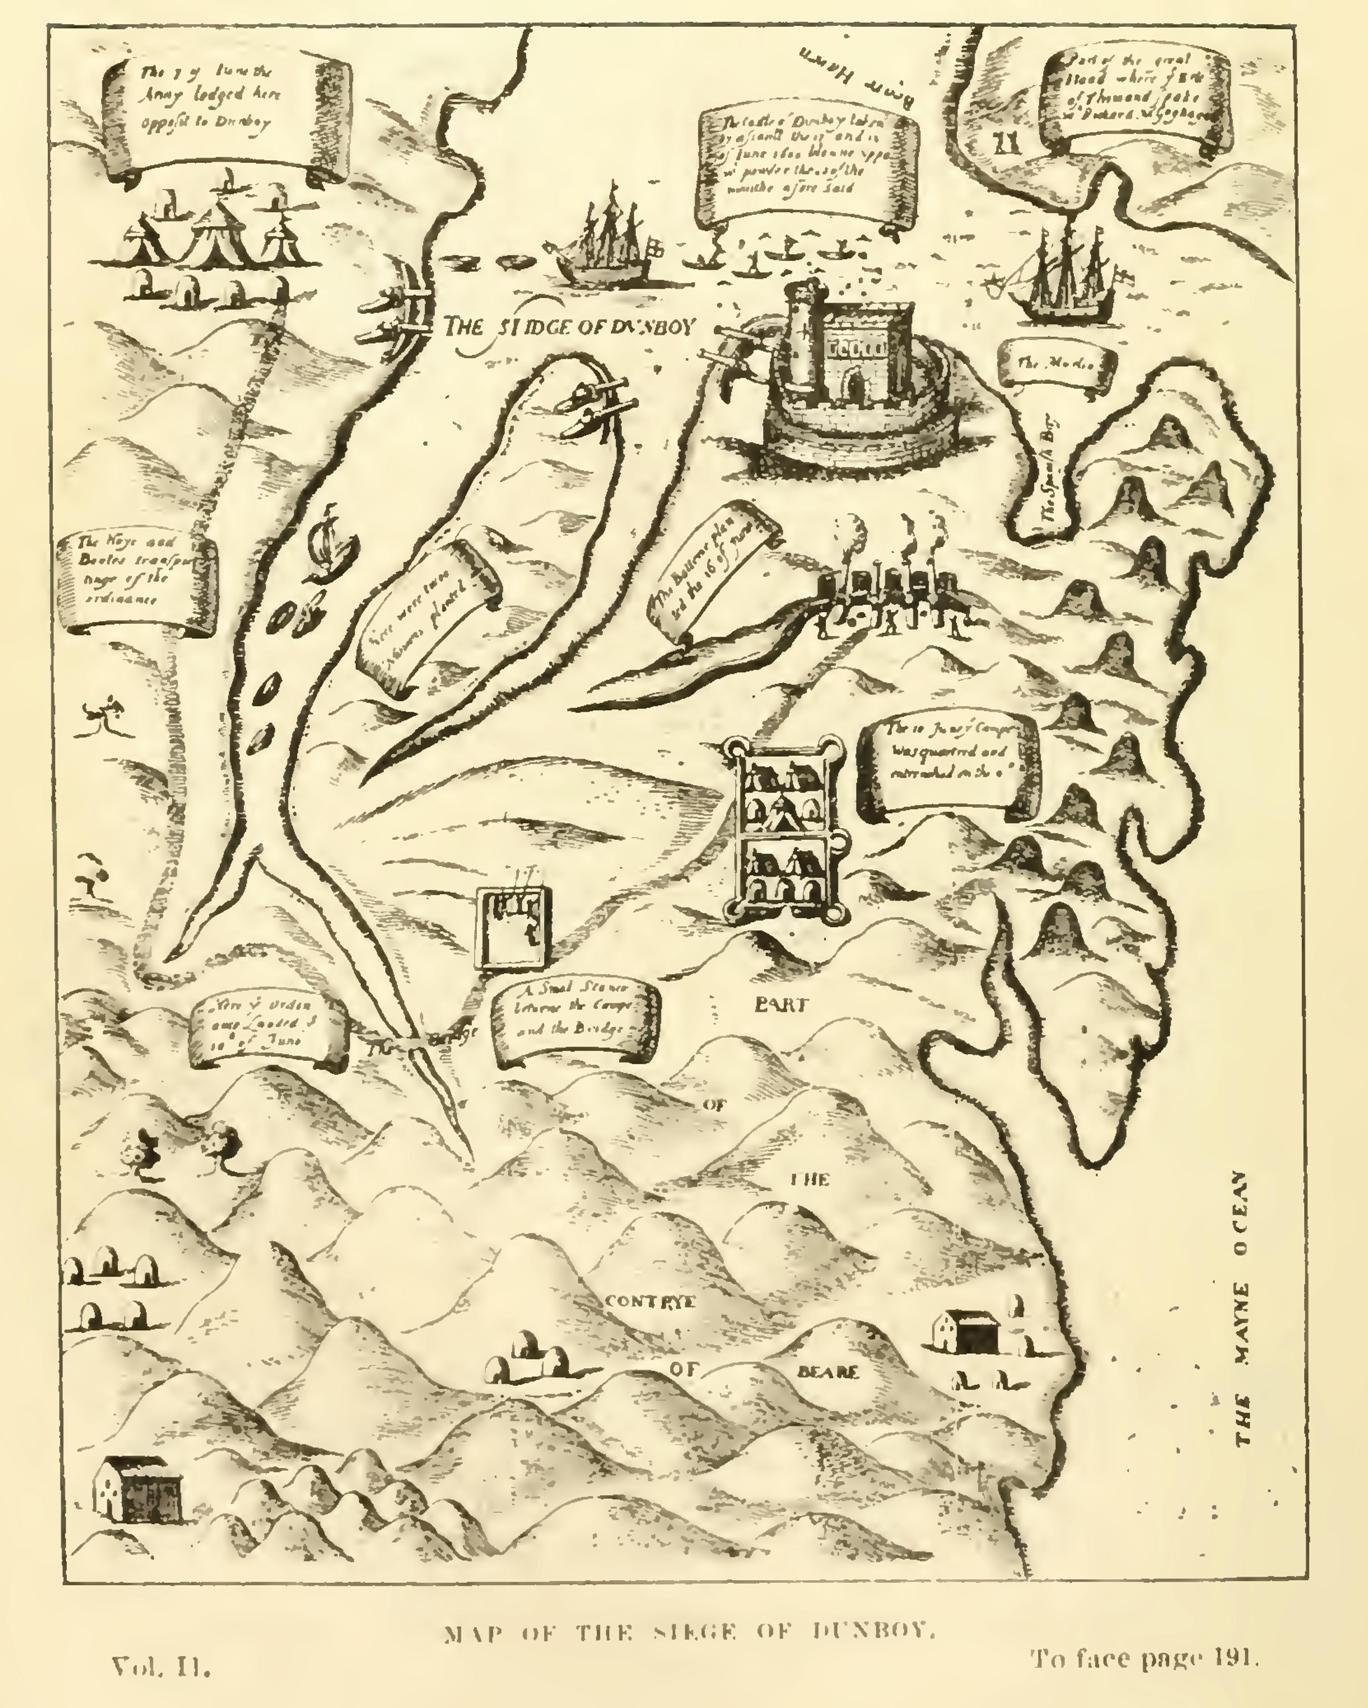 786a.  Map of Siege of Dunboy, late sixteenth century